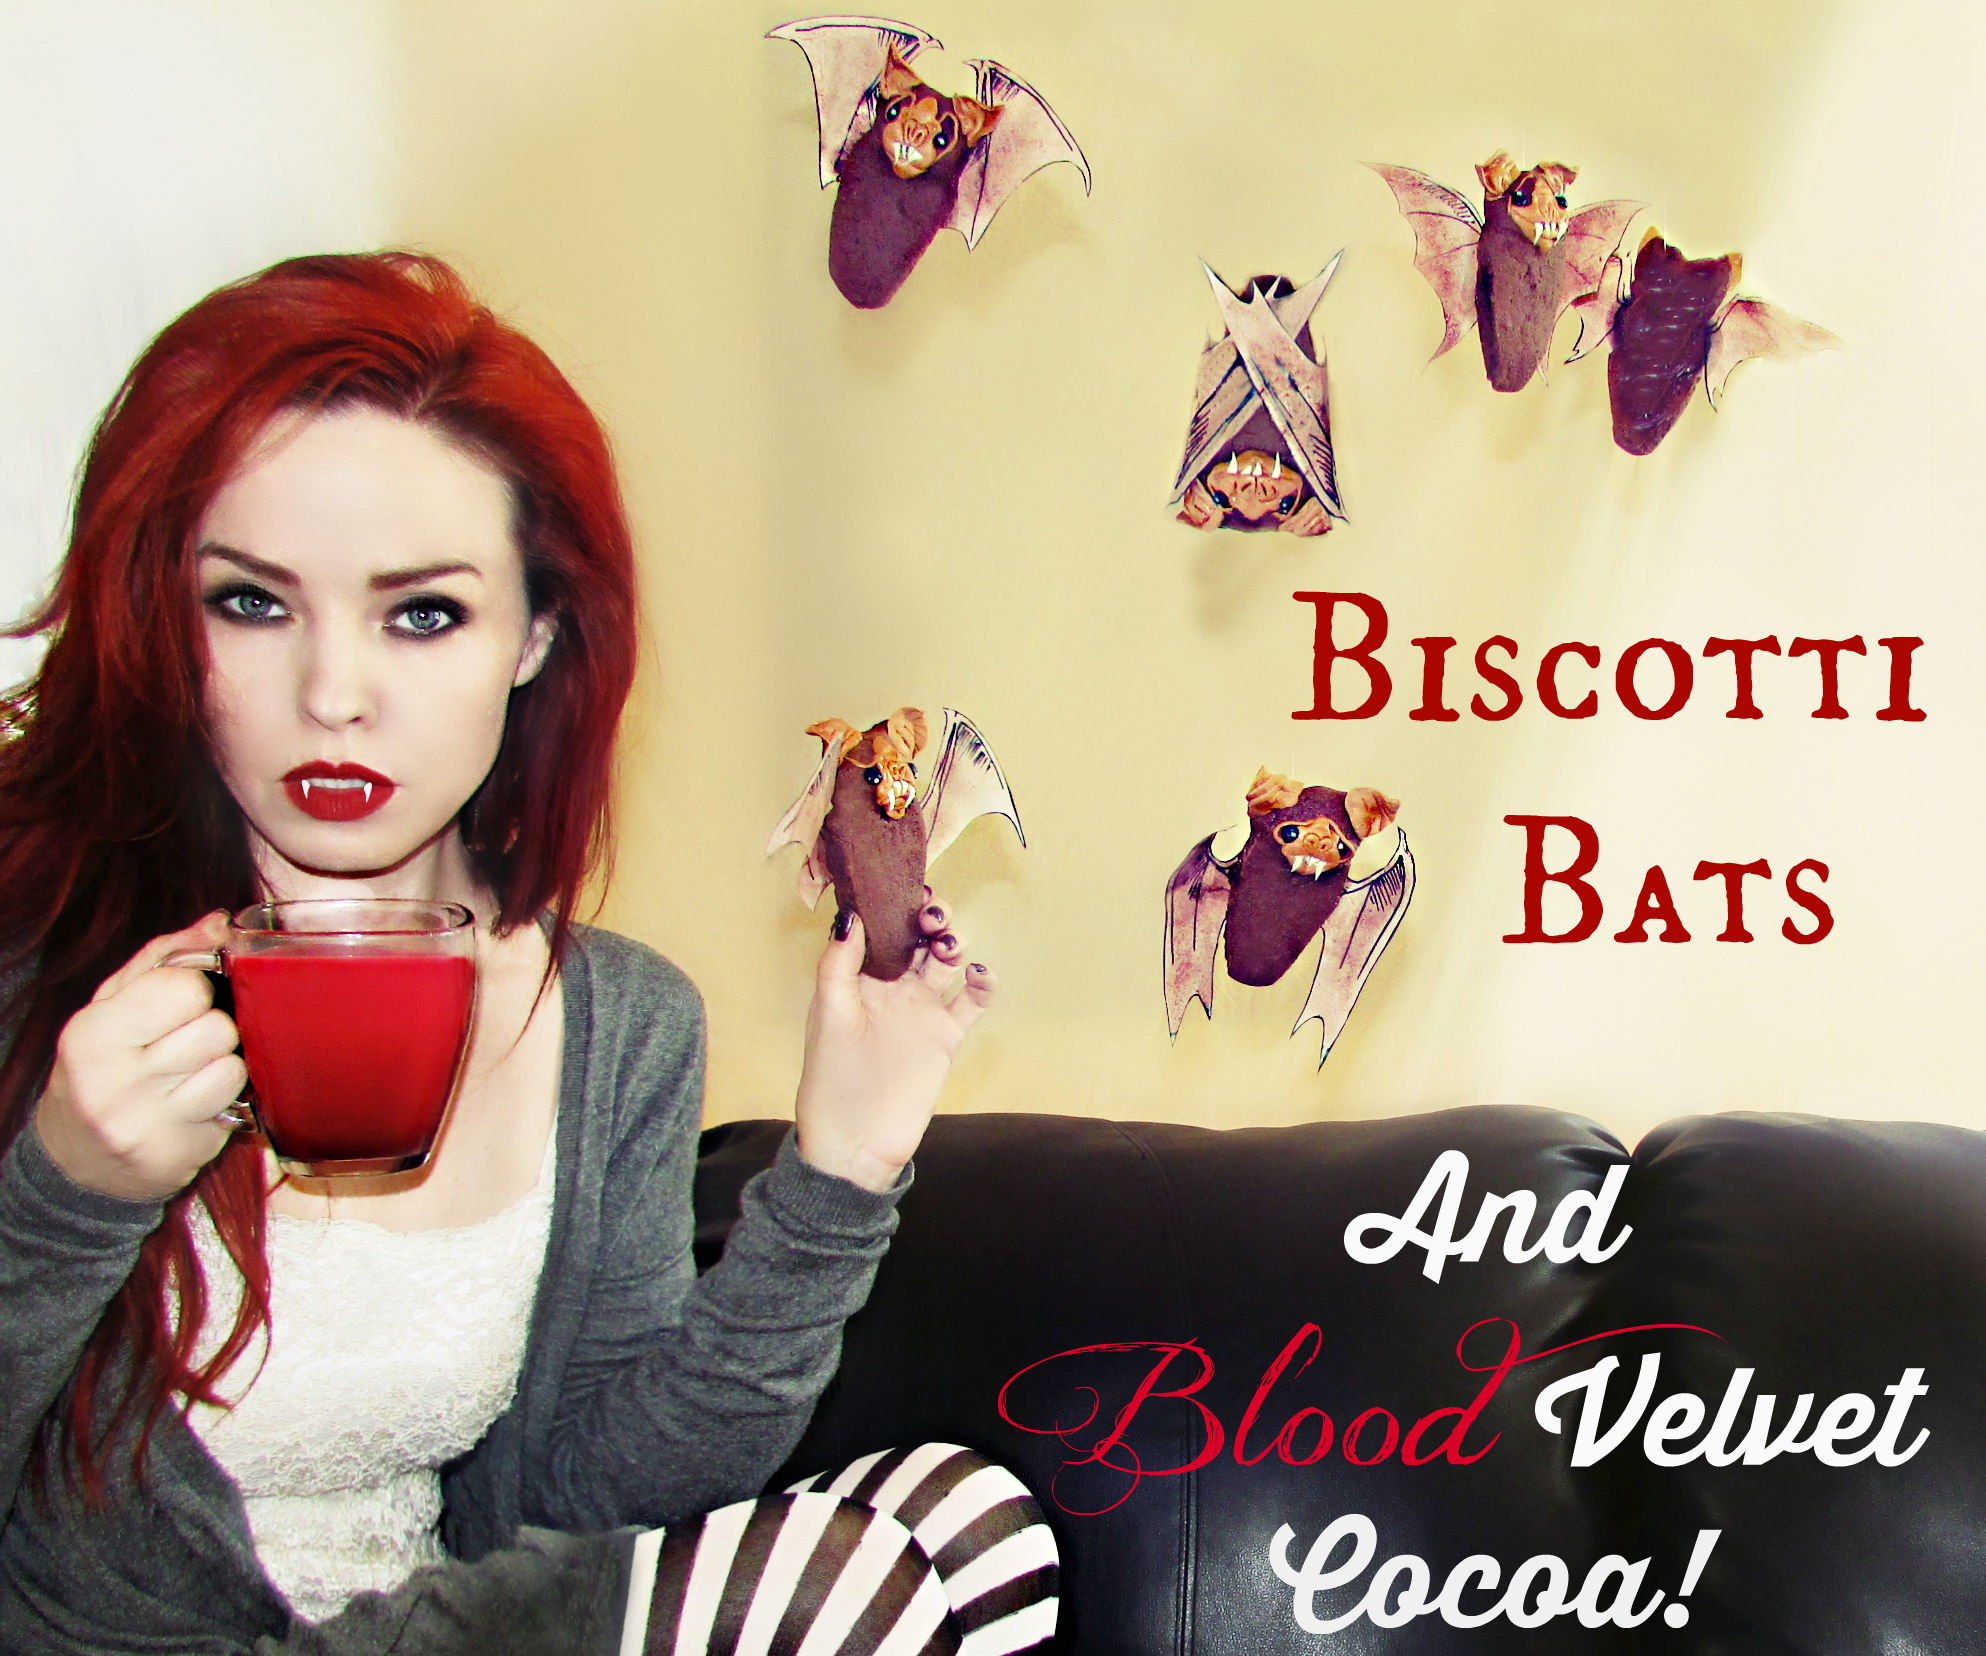 Flying Biscotti Bats and Blood Velvet Cocoa!